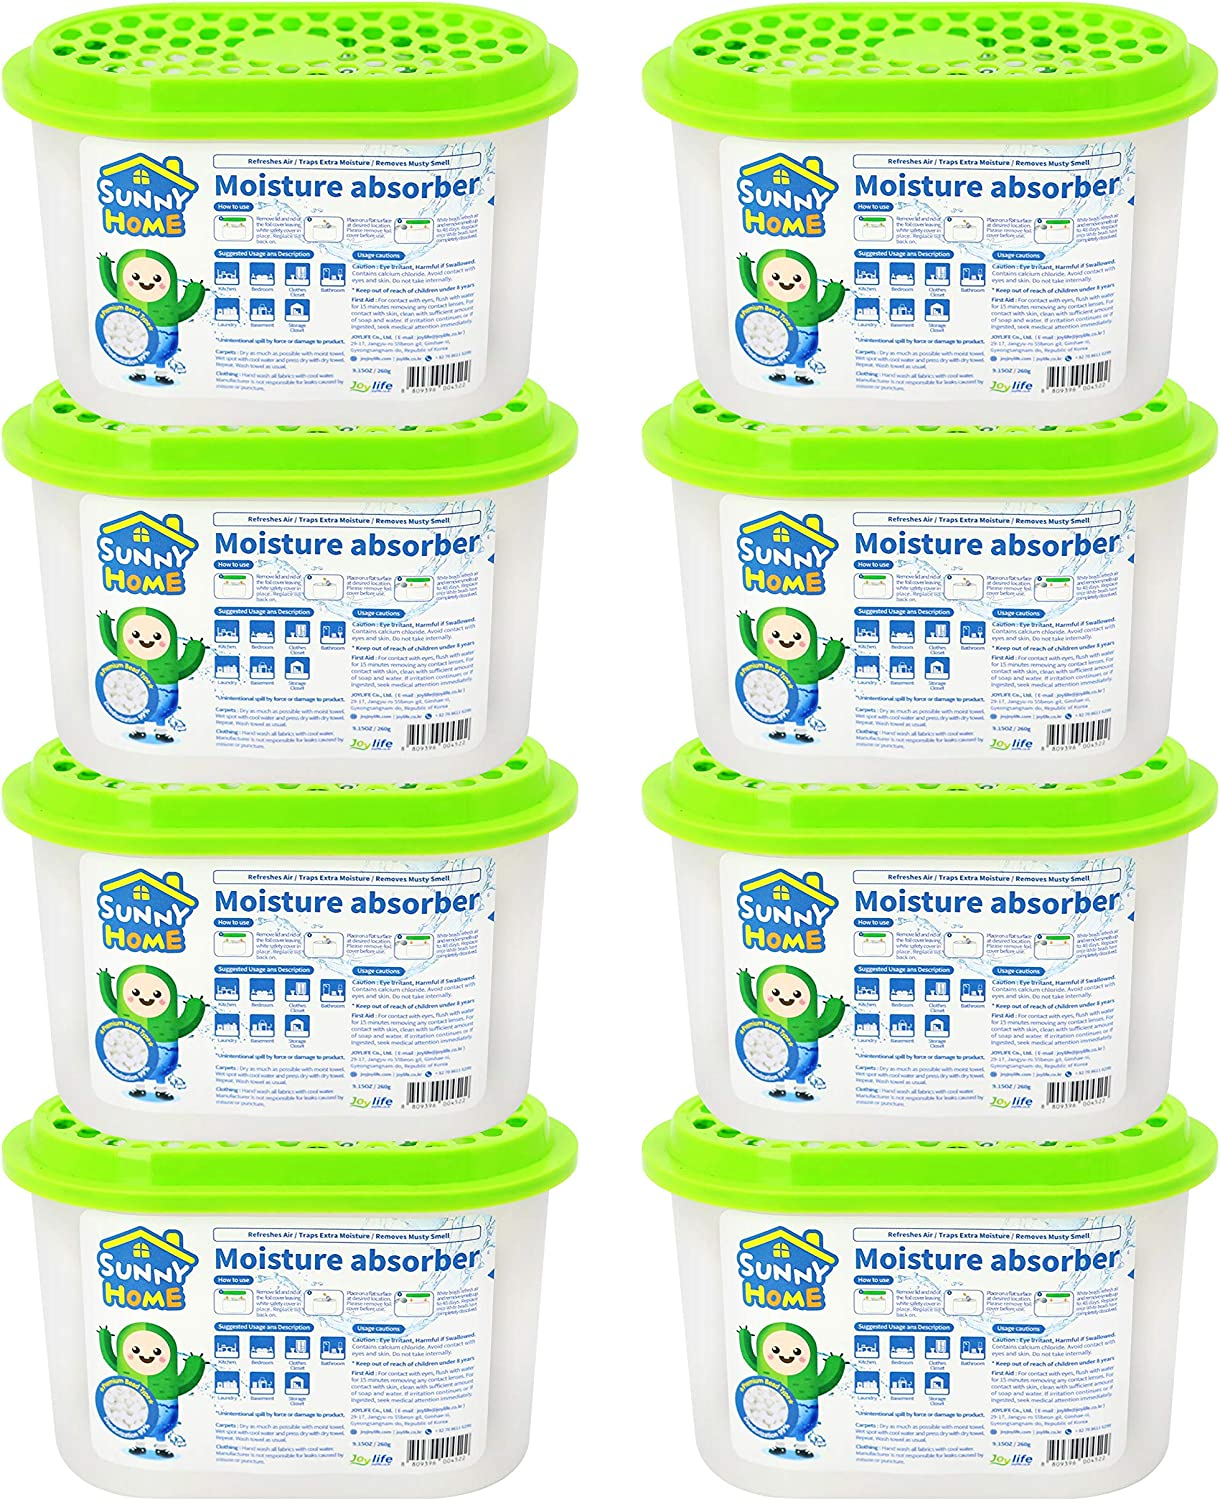 SUNNY HOME Moisture Absorber for Home. Odor Eliminator, Dehumidifier, and Deodorizer for Closet, Bathroom, Kitchen (8)